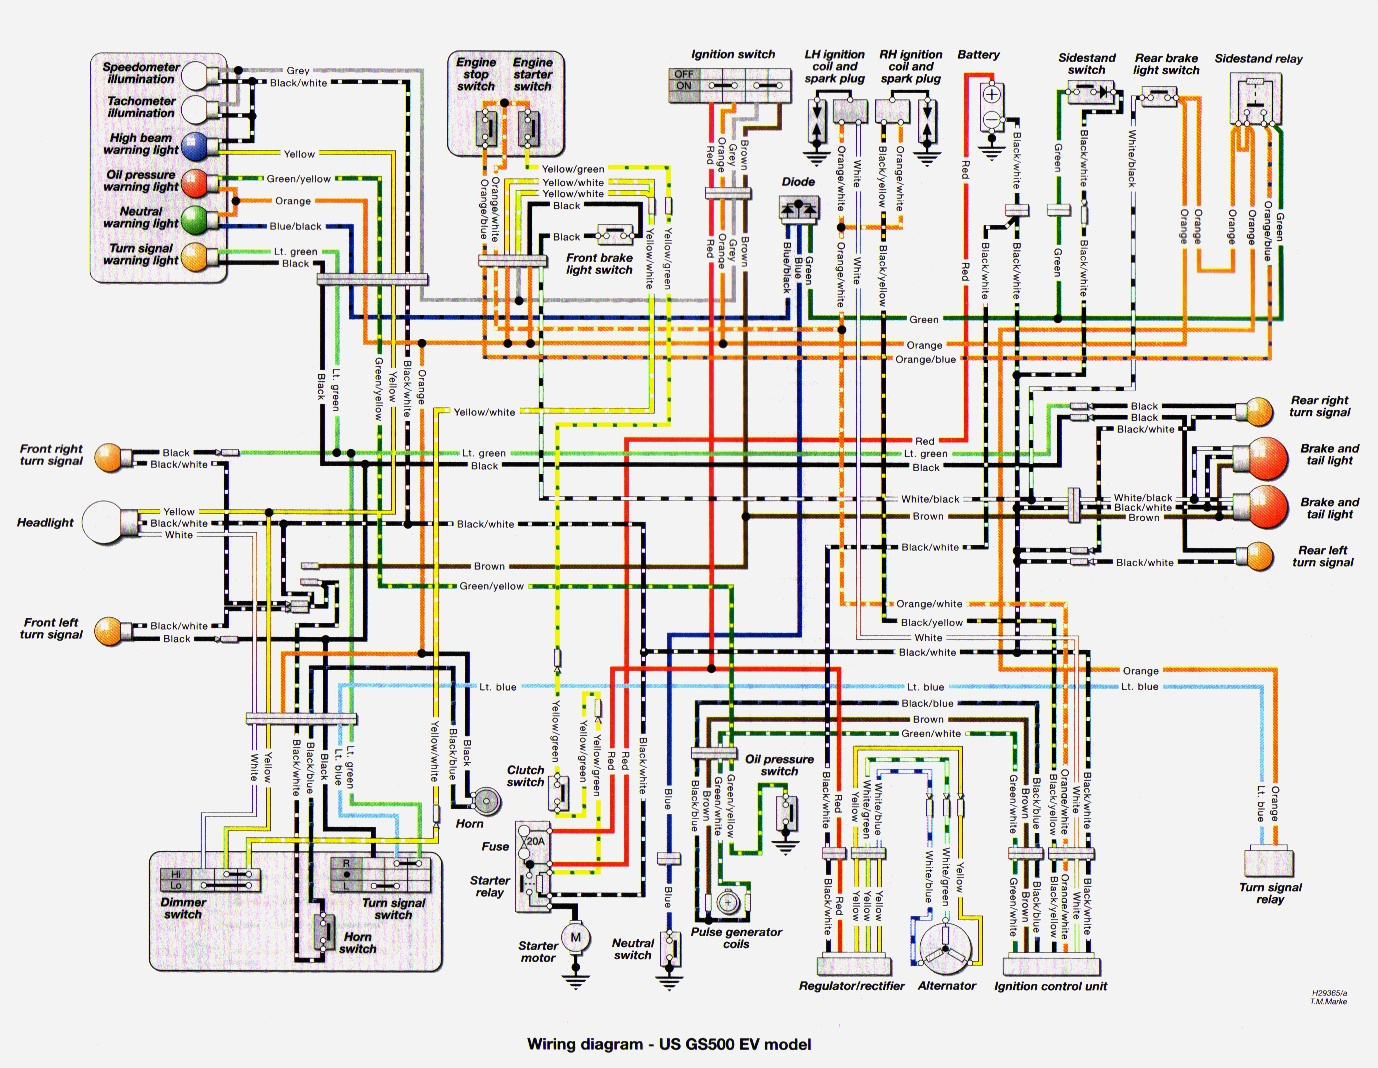 Haynes_WiringDiagram_US_97 wiring diagram of 2003 ford expedition the wiring diagram 2001 ford expedition wiring diagram at soozxer.org